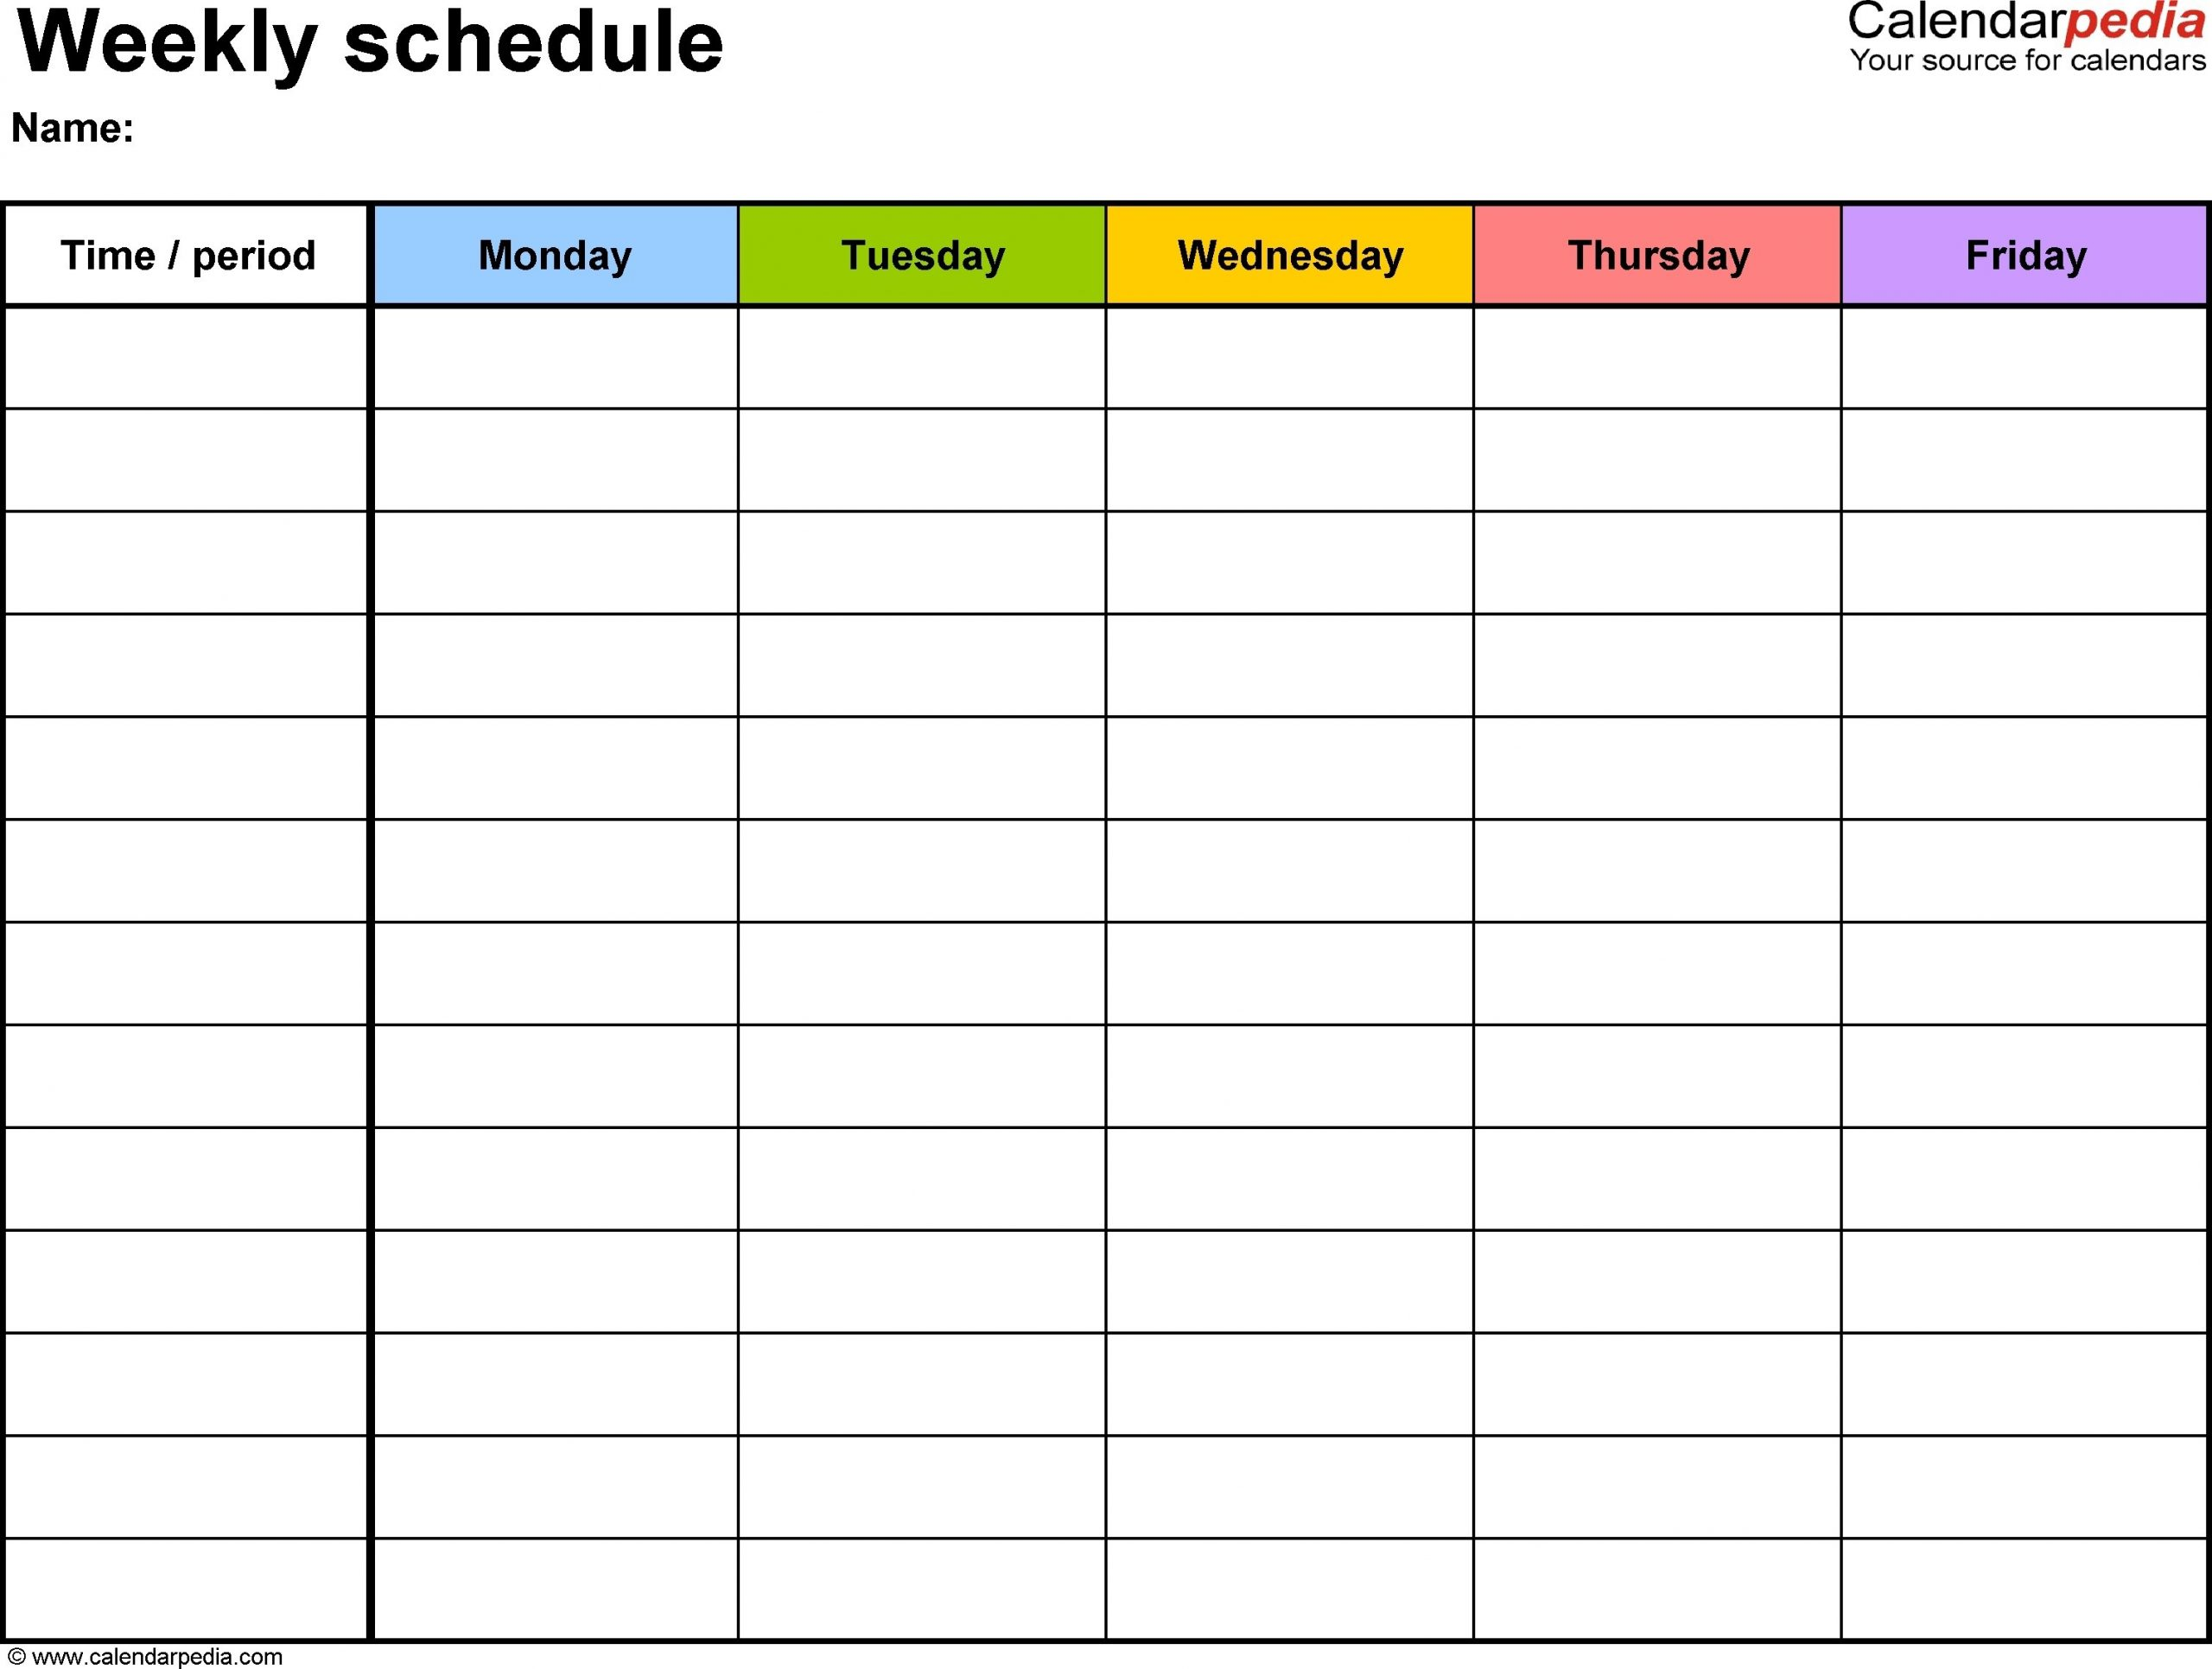 Printable Calendar With Time Slots : Free Calendar Template Weekly Planner With Time Slots Pdf